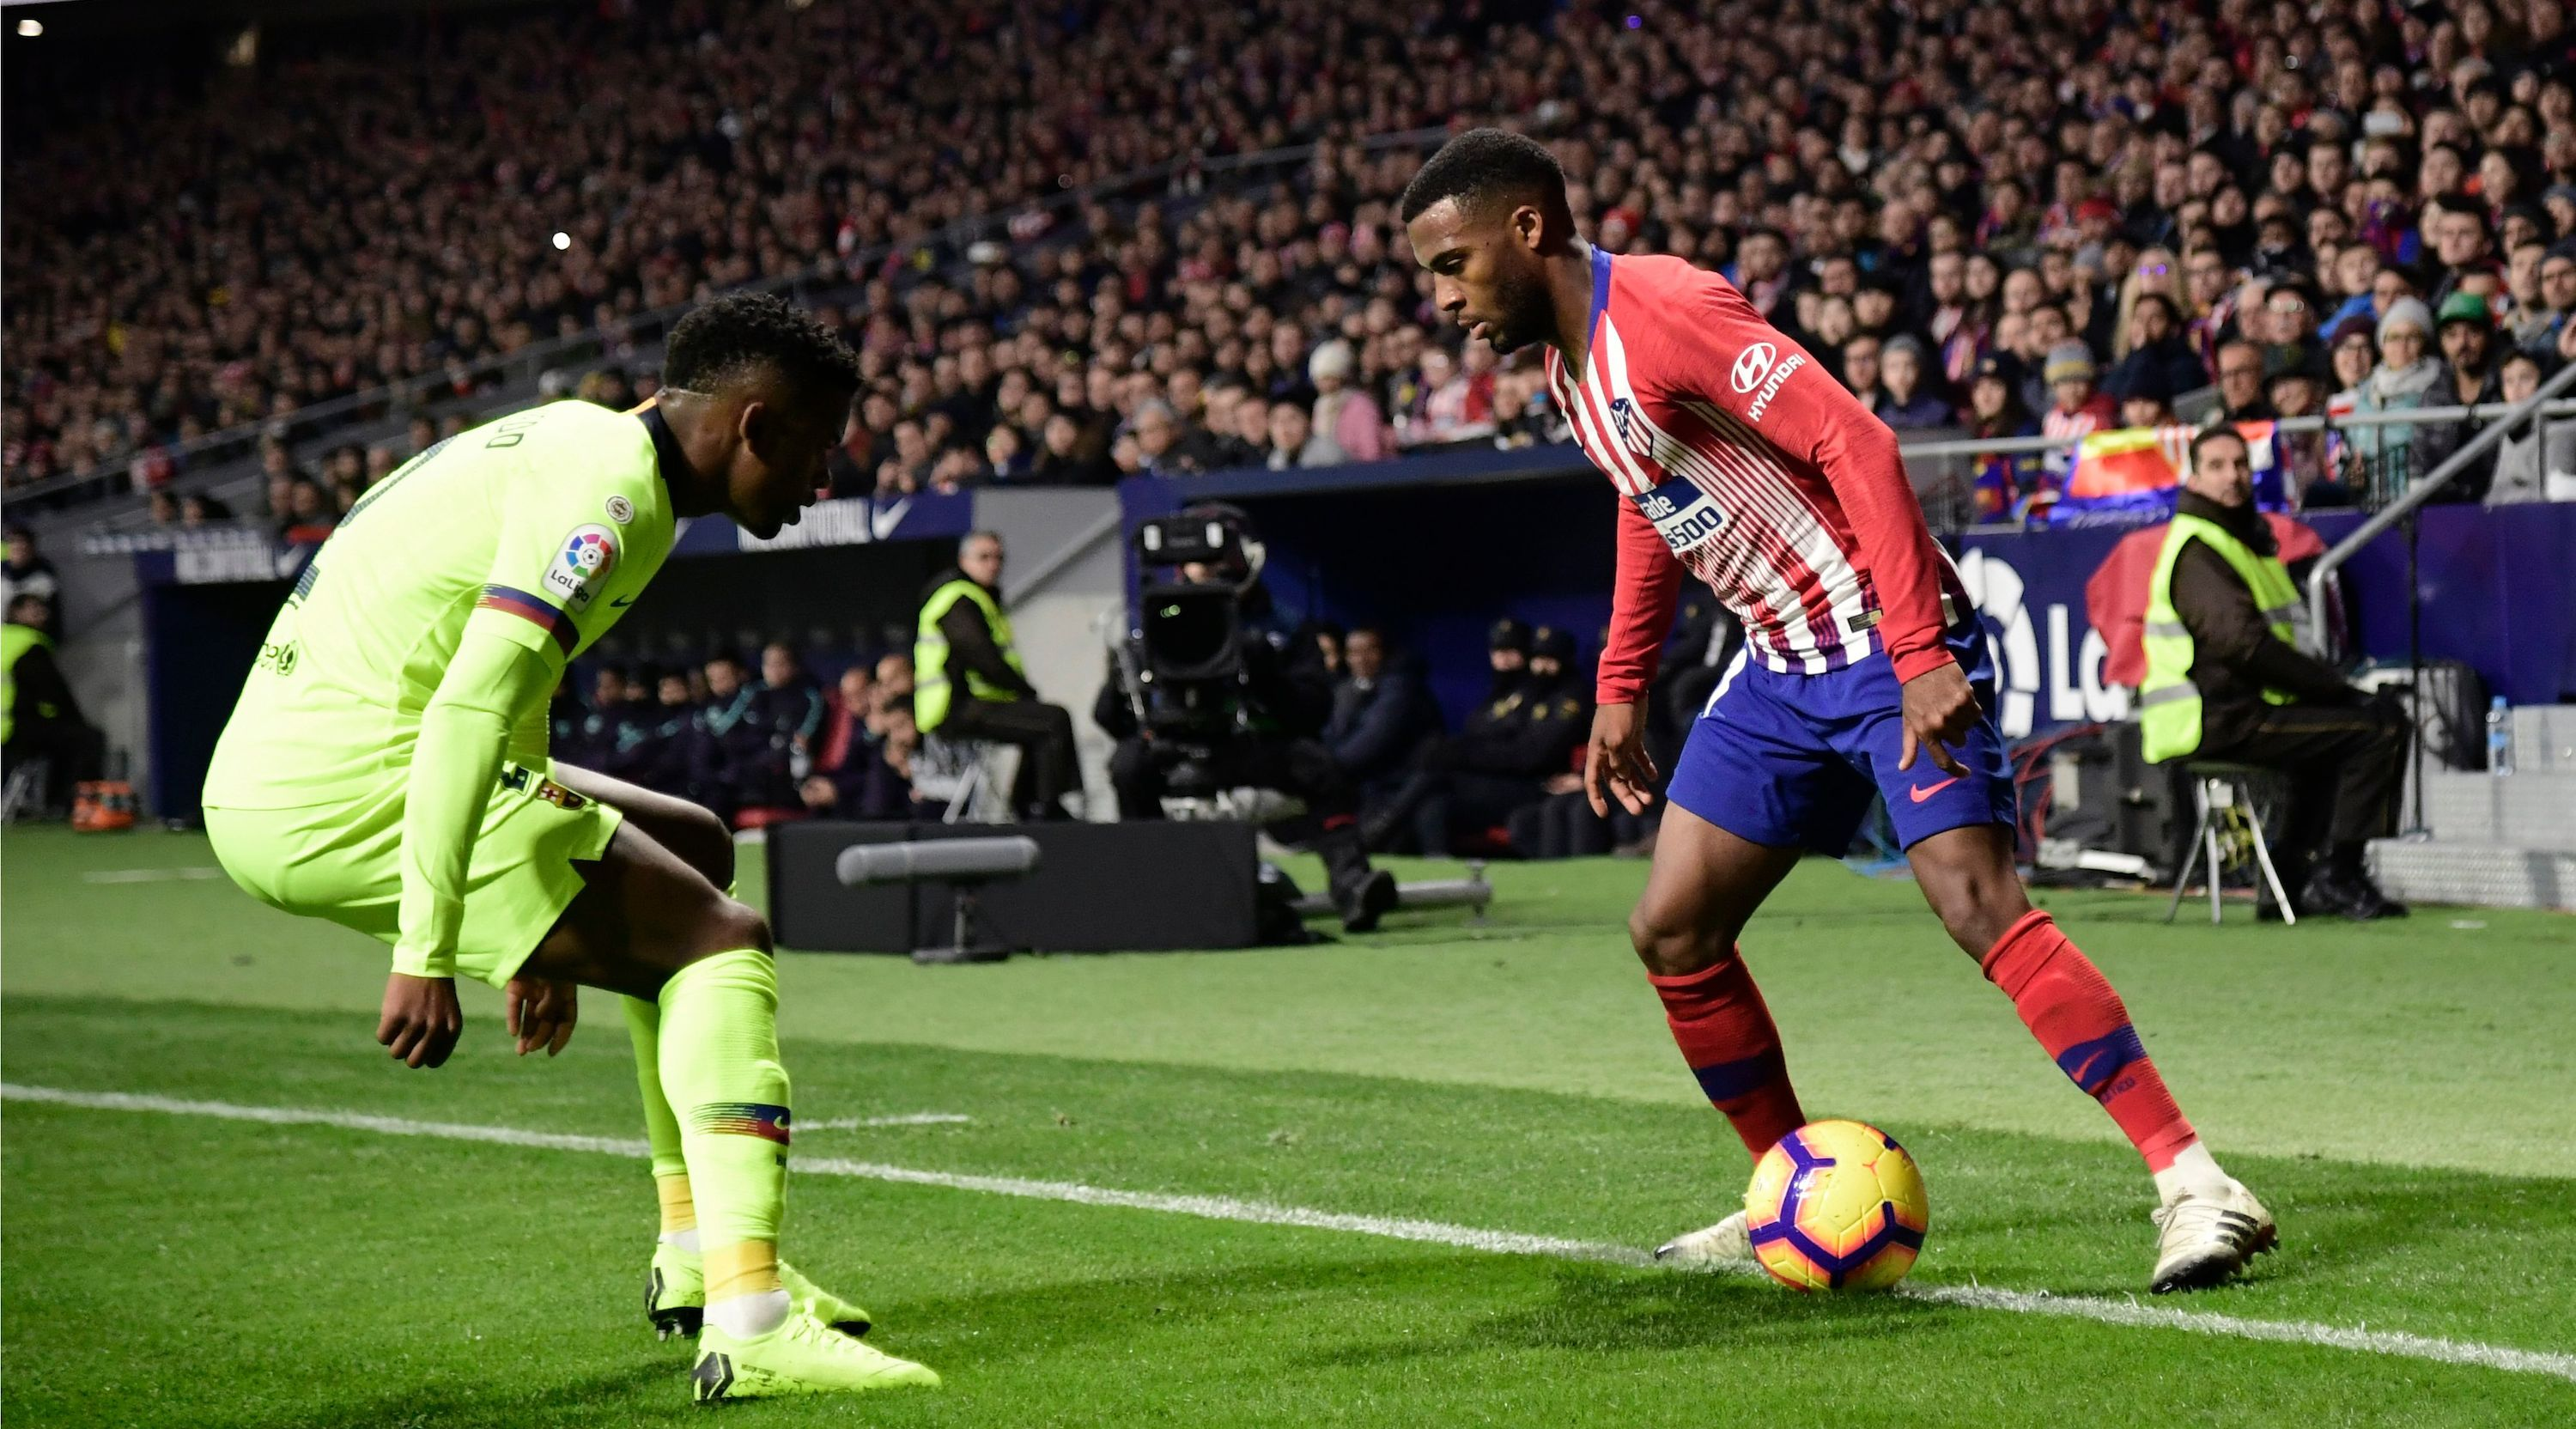 Atletico Madrid's French midfielder Thomas Lemar (R) challenges Barcelona's Portuguese defender Nelson Semedo during the Spanish league football match between Club Atletico de Madrid and FC Barcelona at the Wanda Metropolitano stadium in Madrid on November 24, 2018. (Photo by JAVIER SORIANO / AFP) (Photo credit should read JAVIER SORIANO/AFP/Getty Images)